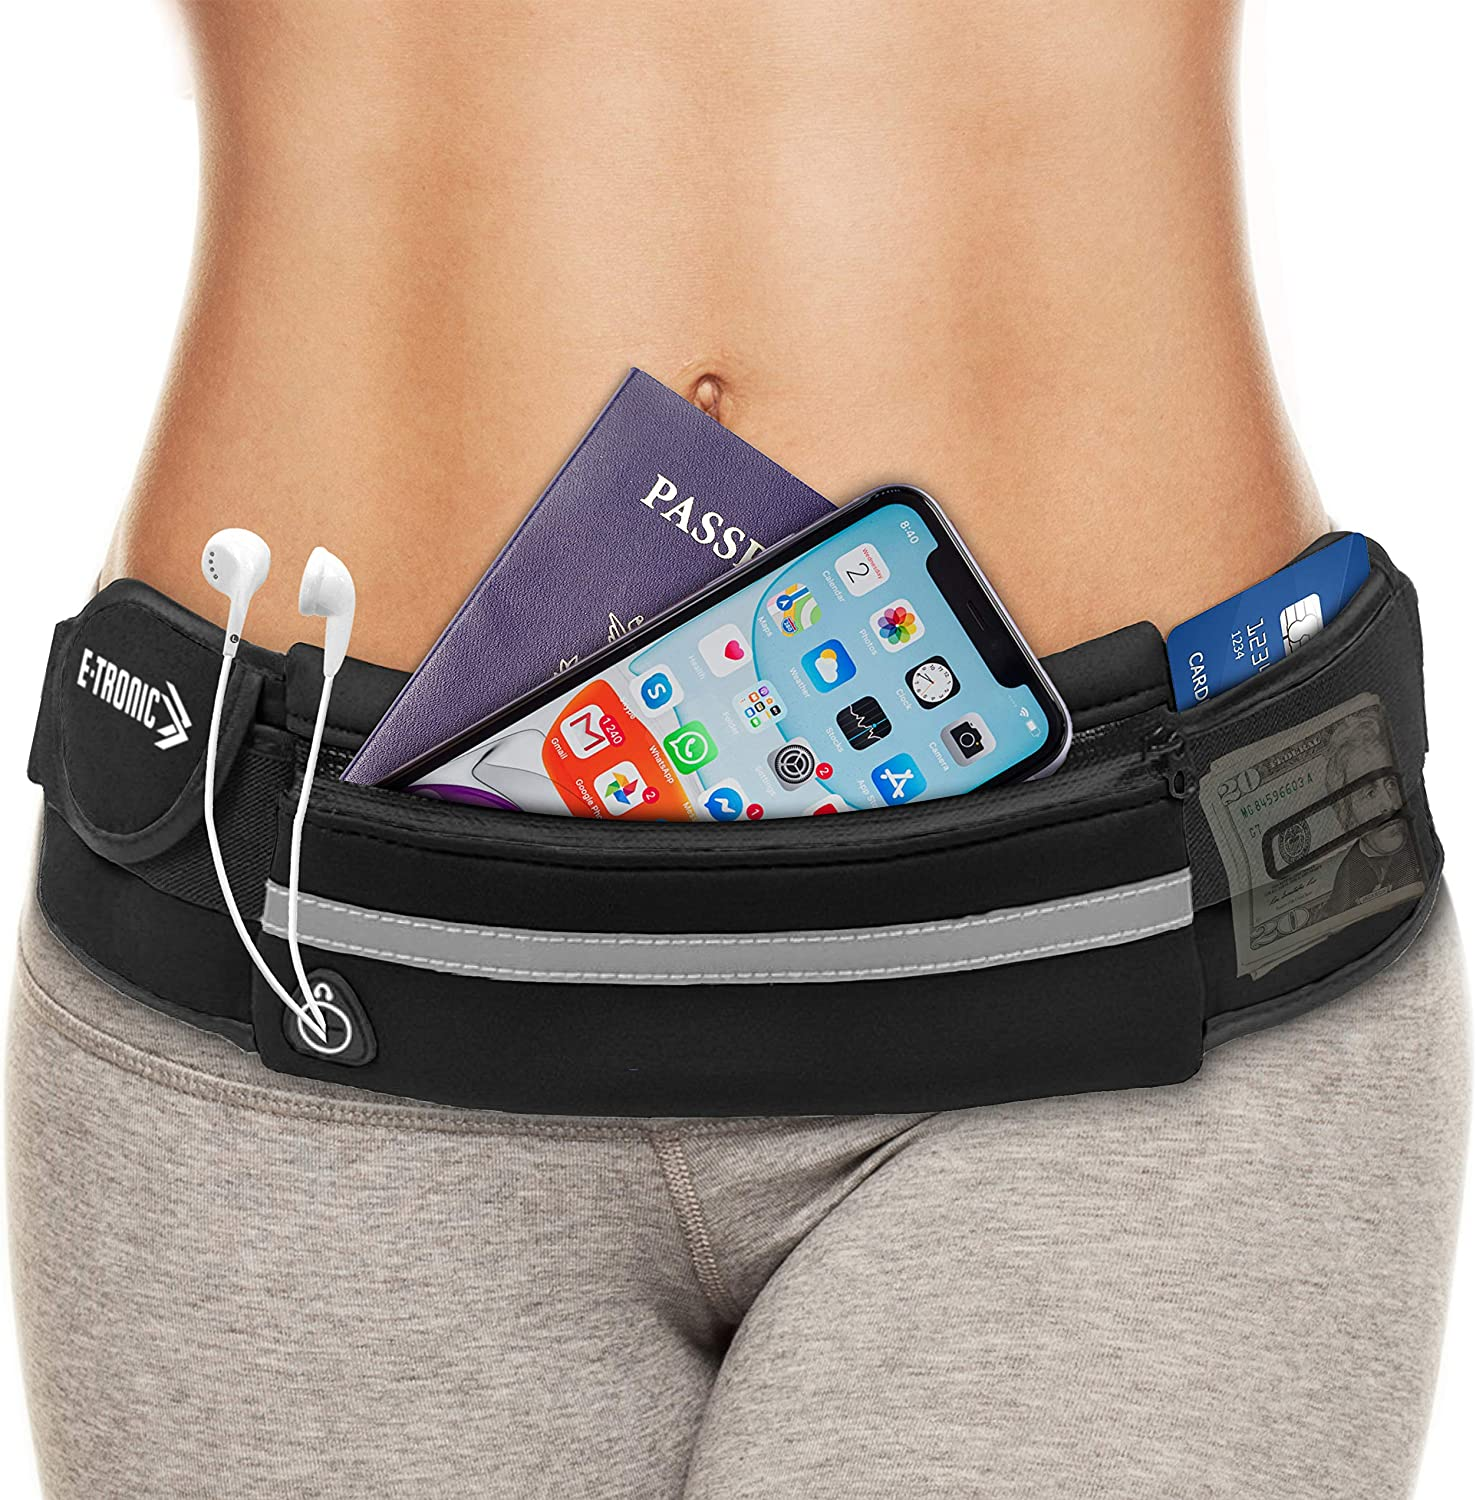 E Tronic Edge Waist Packs: Best Comfortable Unisex Running Belts That Fit All Waist Sizes & All Phone Models for Running, Hiking, Workouts, Cycling, Travelling Money Belt & More